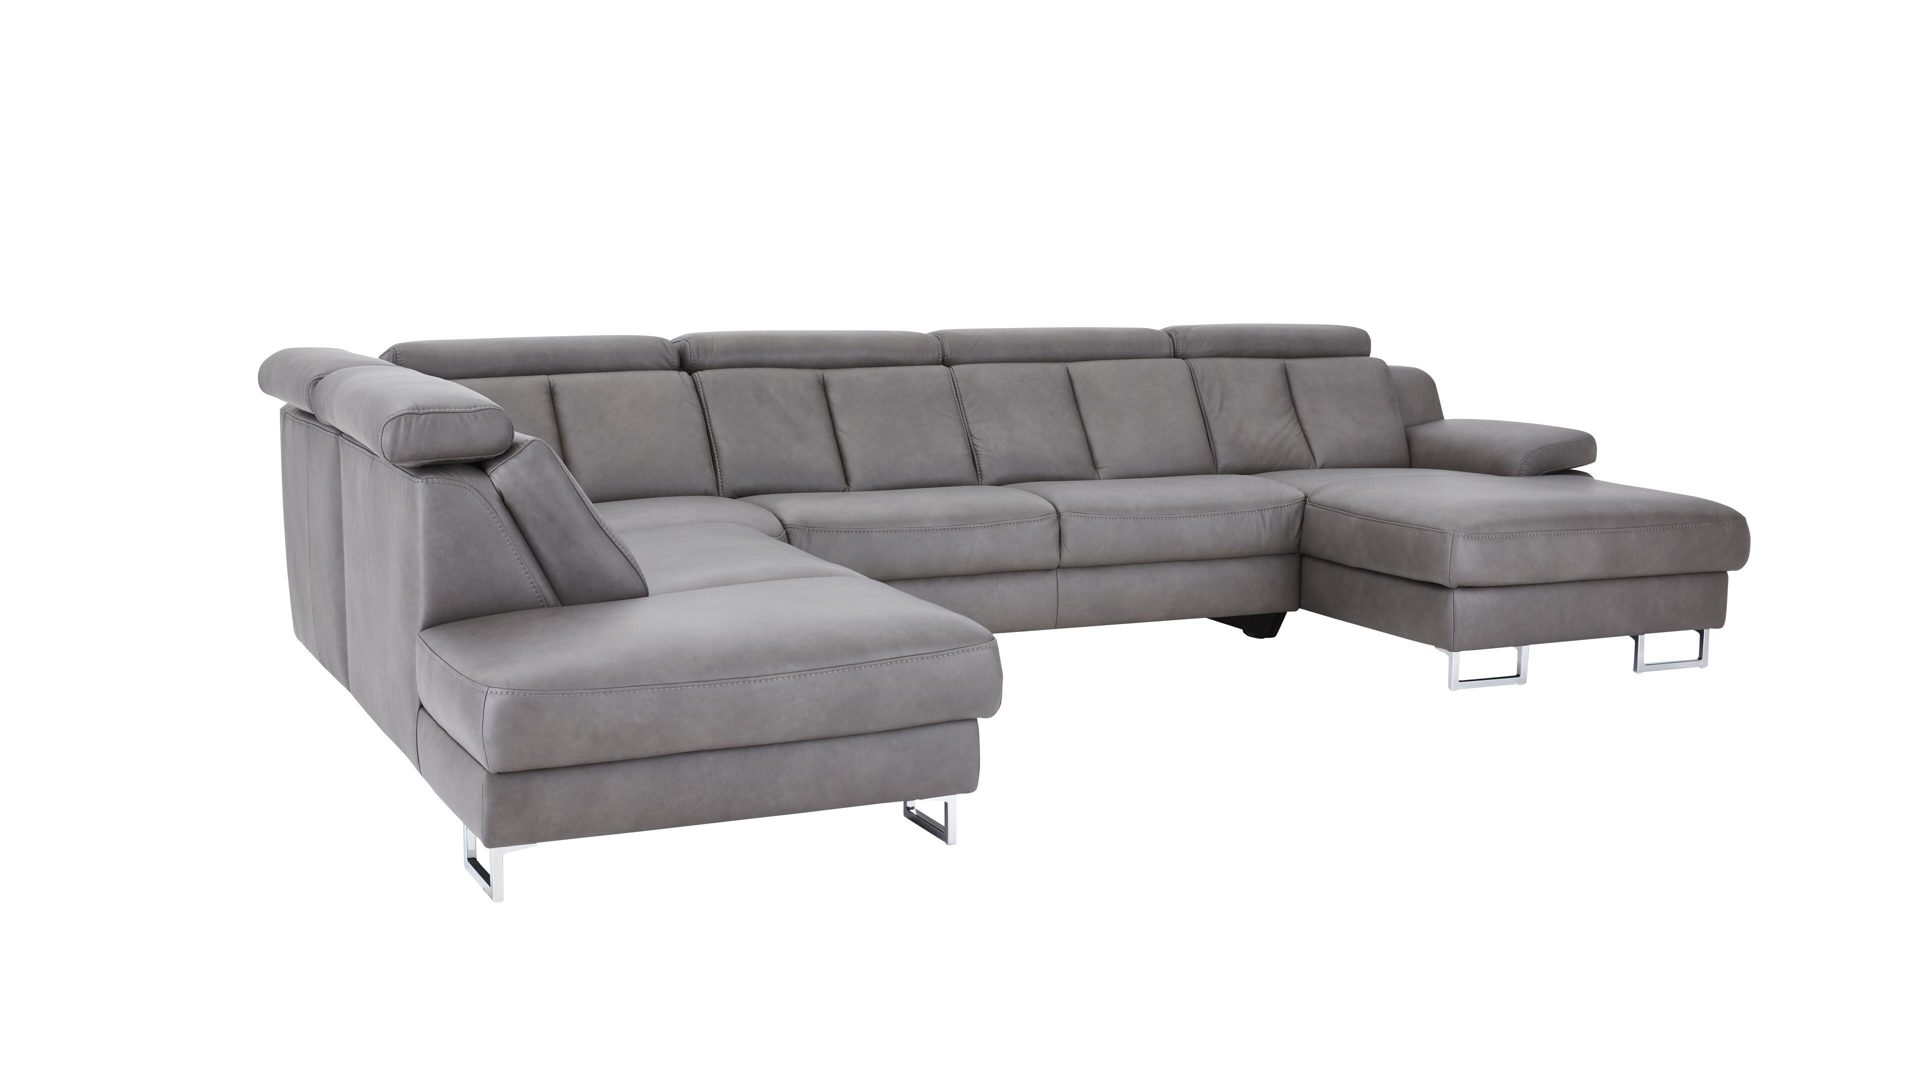 Interliving Sofa Serie 4050 Wohnlandschaft Graues Longlife Leder